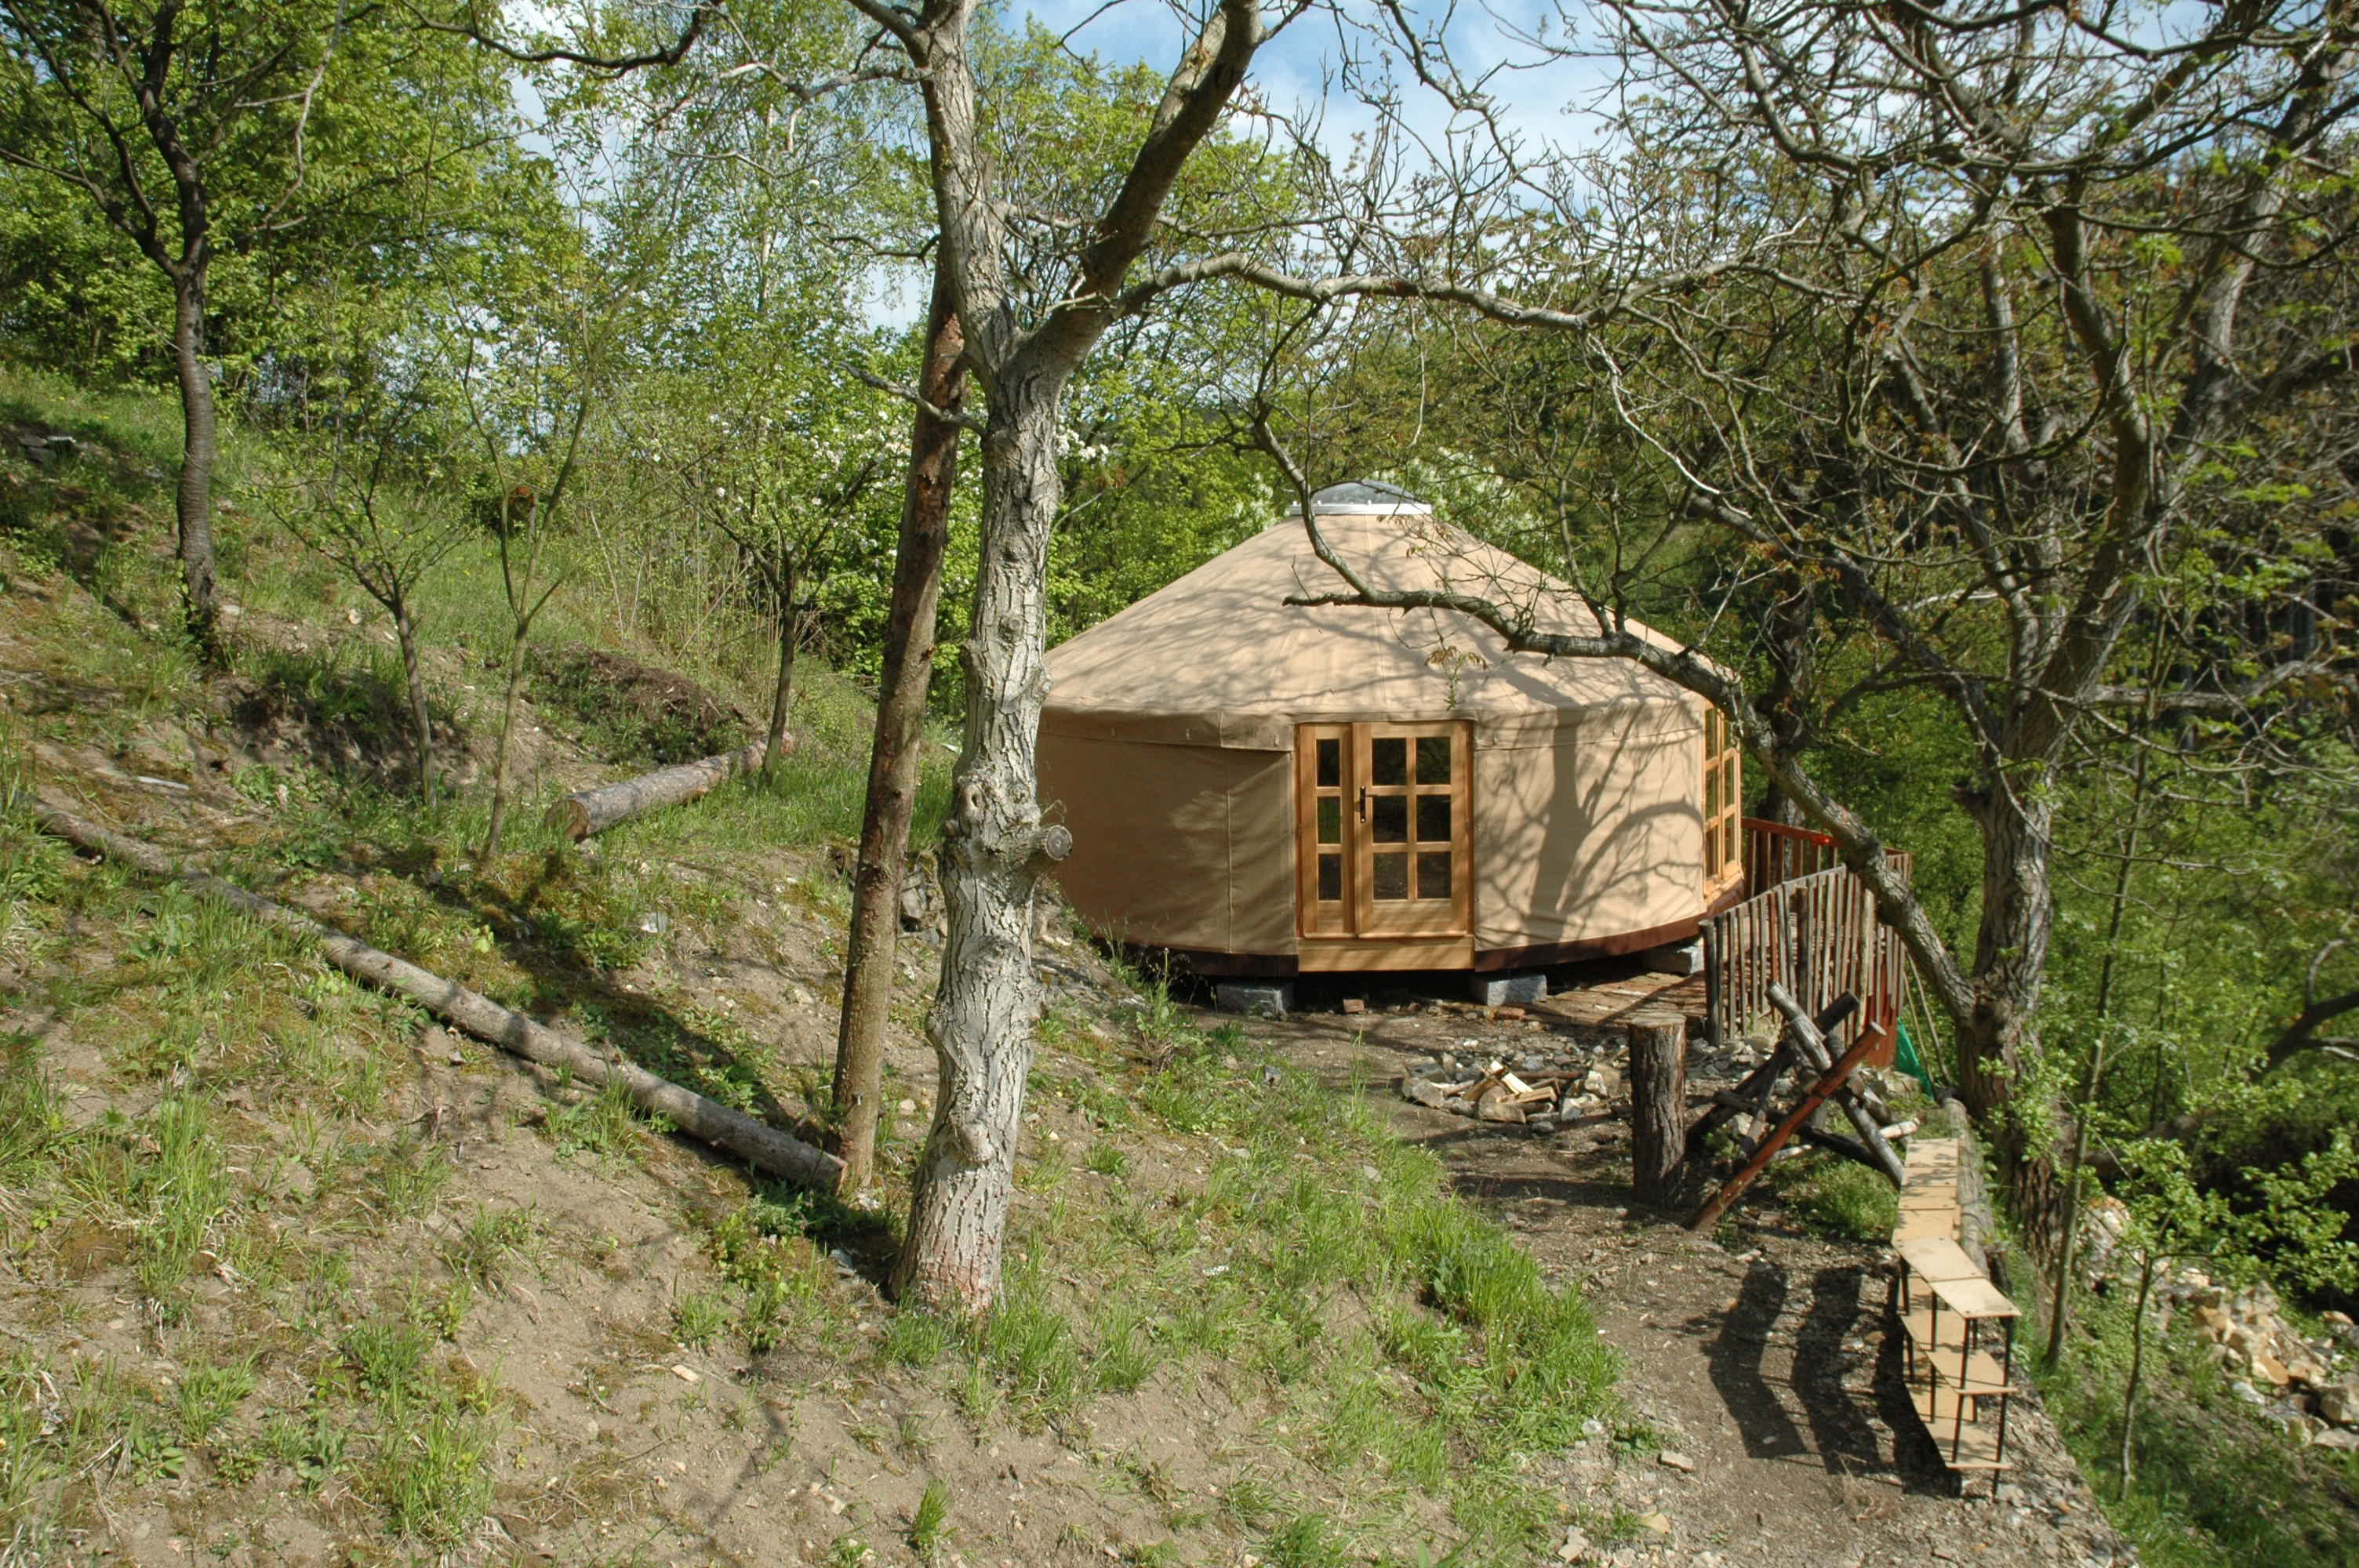 yurt for a therap. treatments